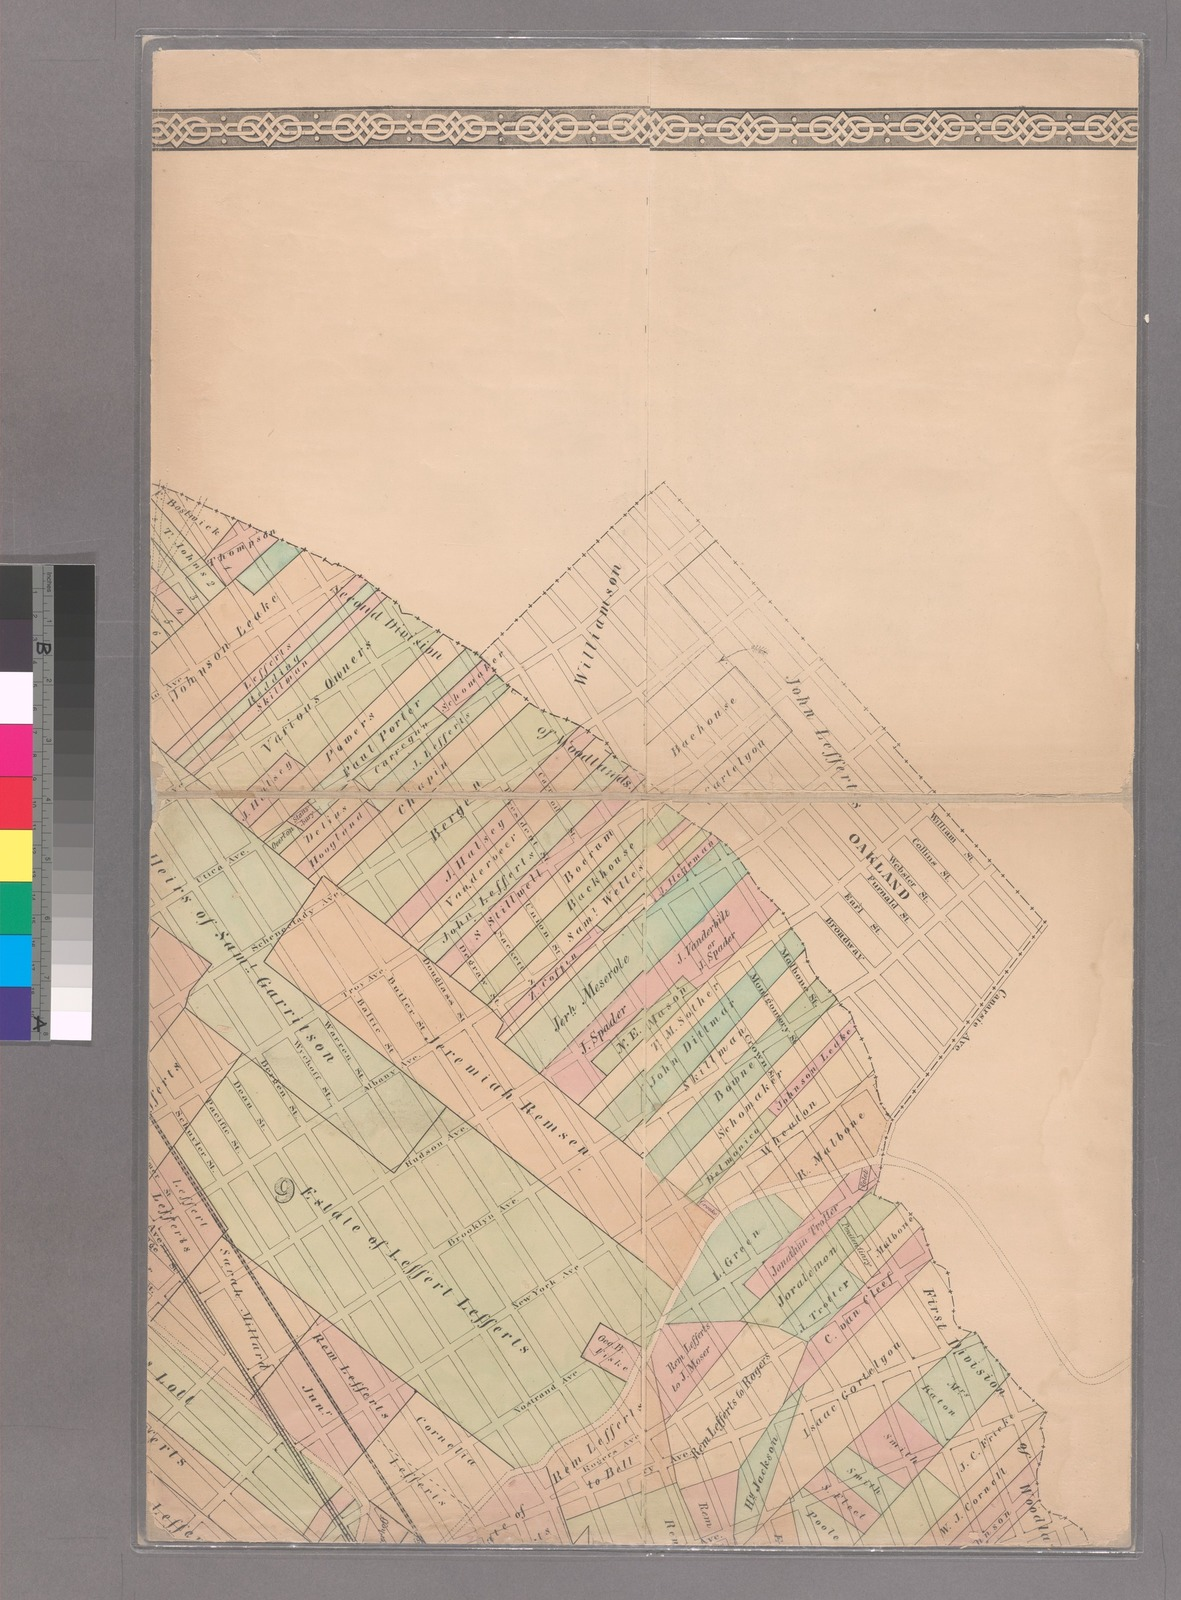 Plan of the city of Brooklyn, L.I.